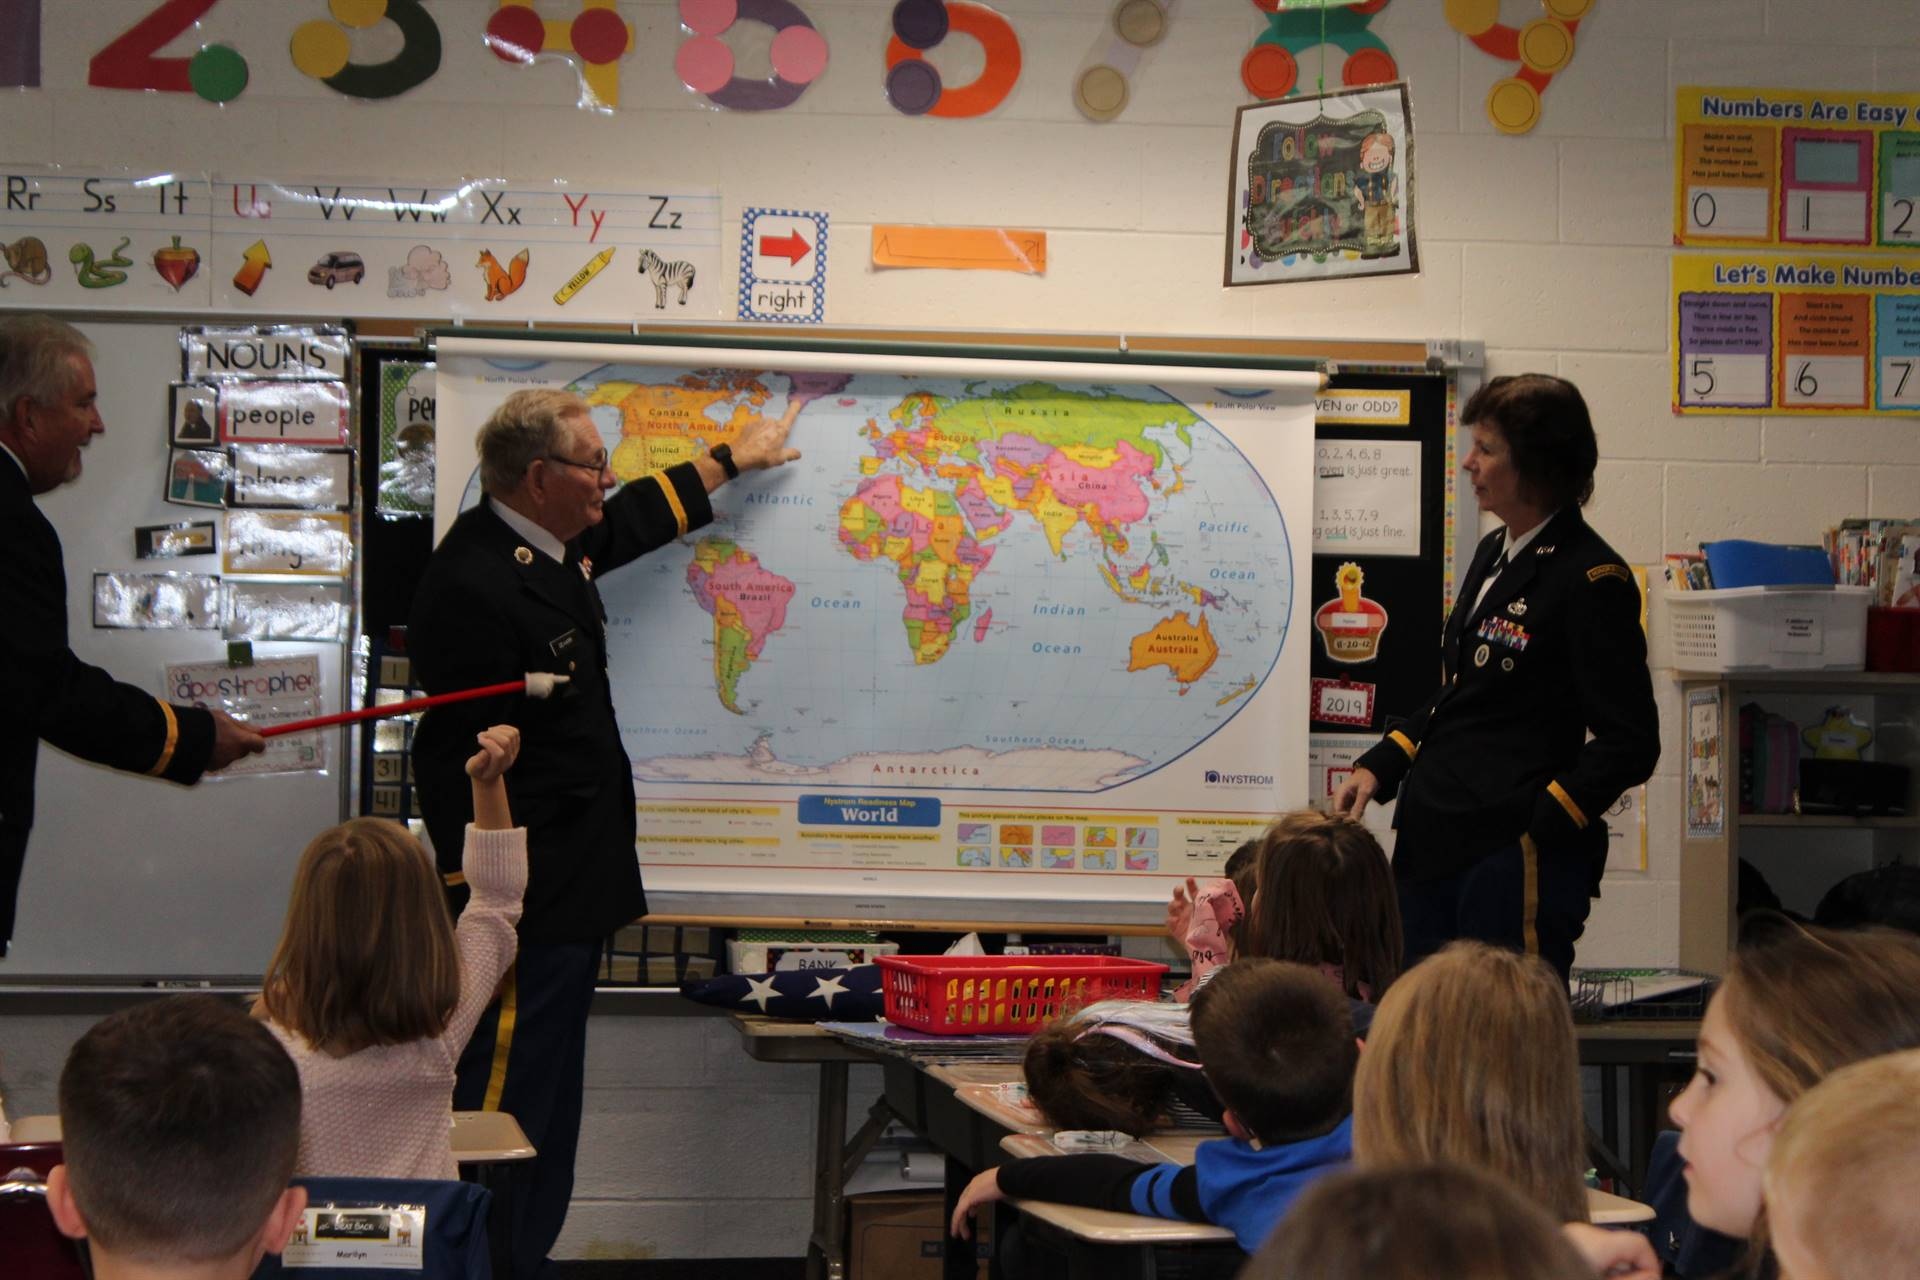 The Honor Guard uses a map of the world to show the students the countries they have visited